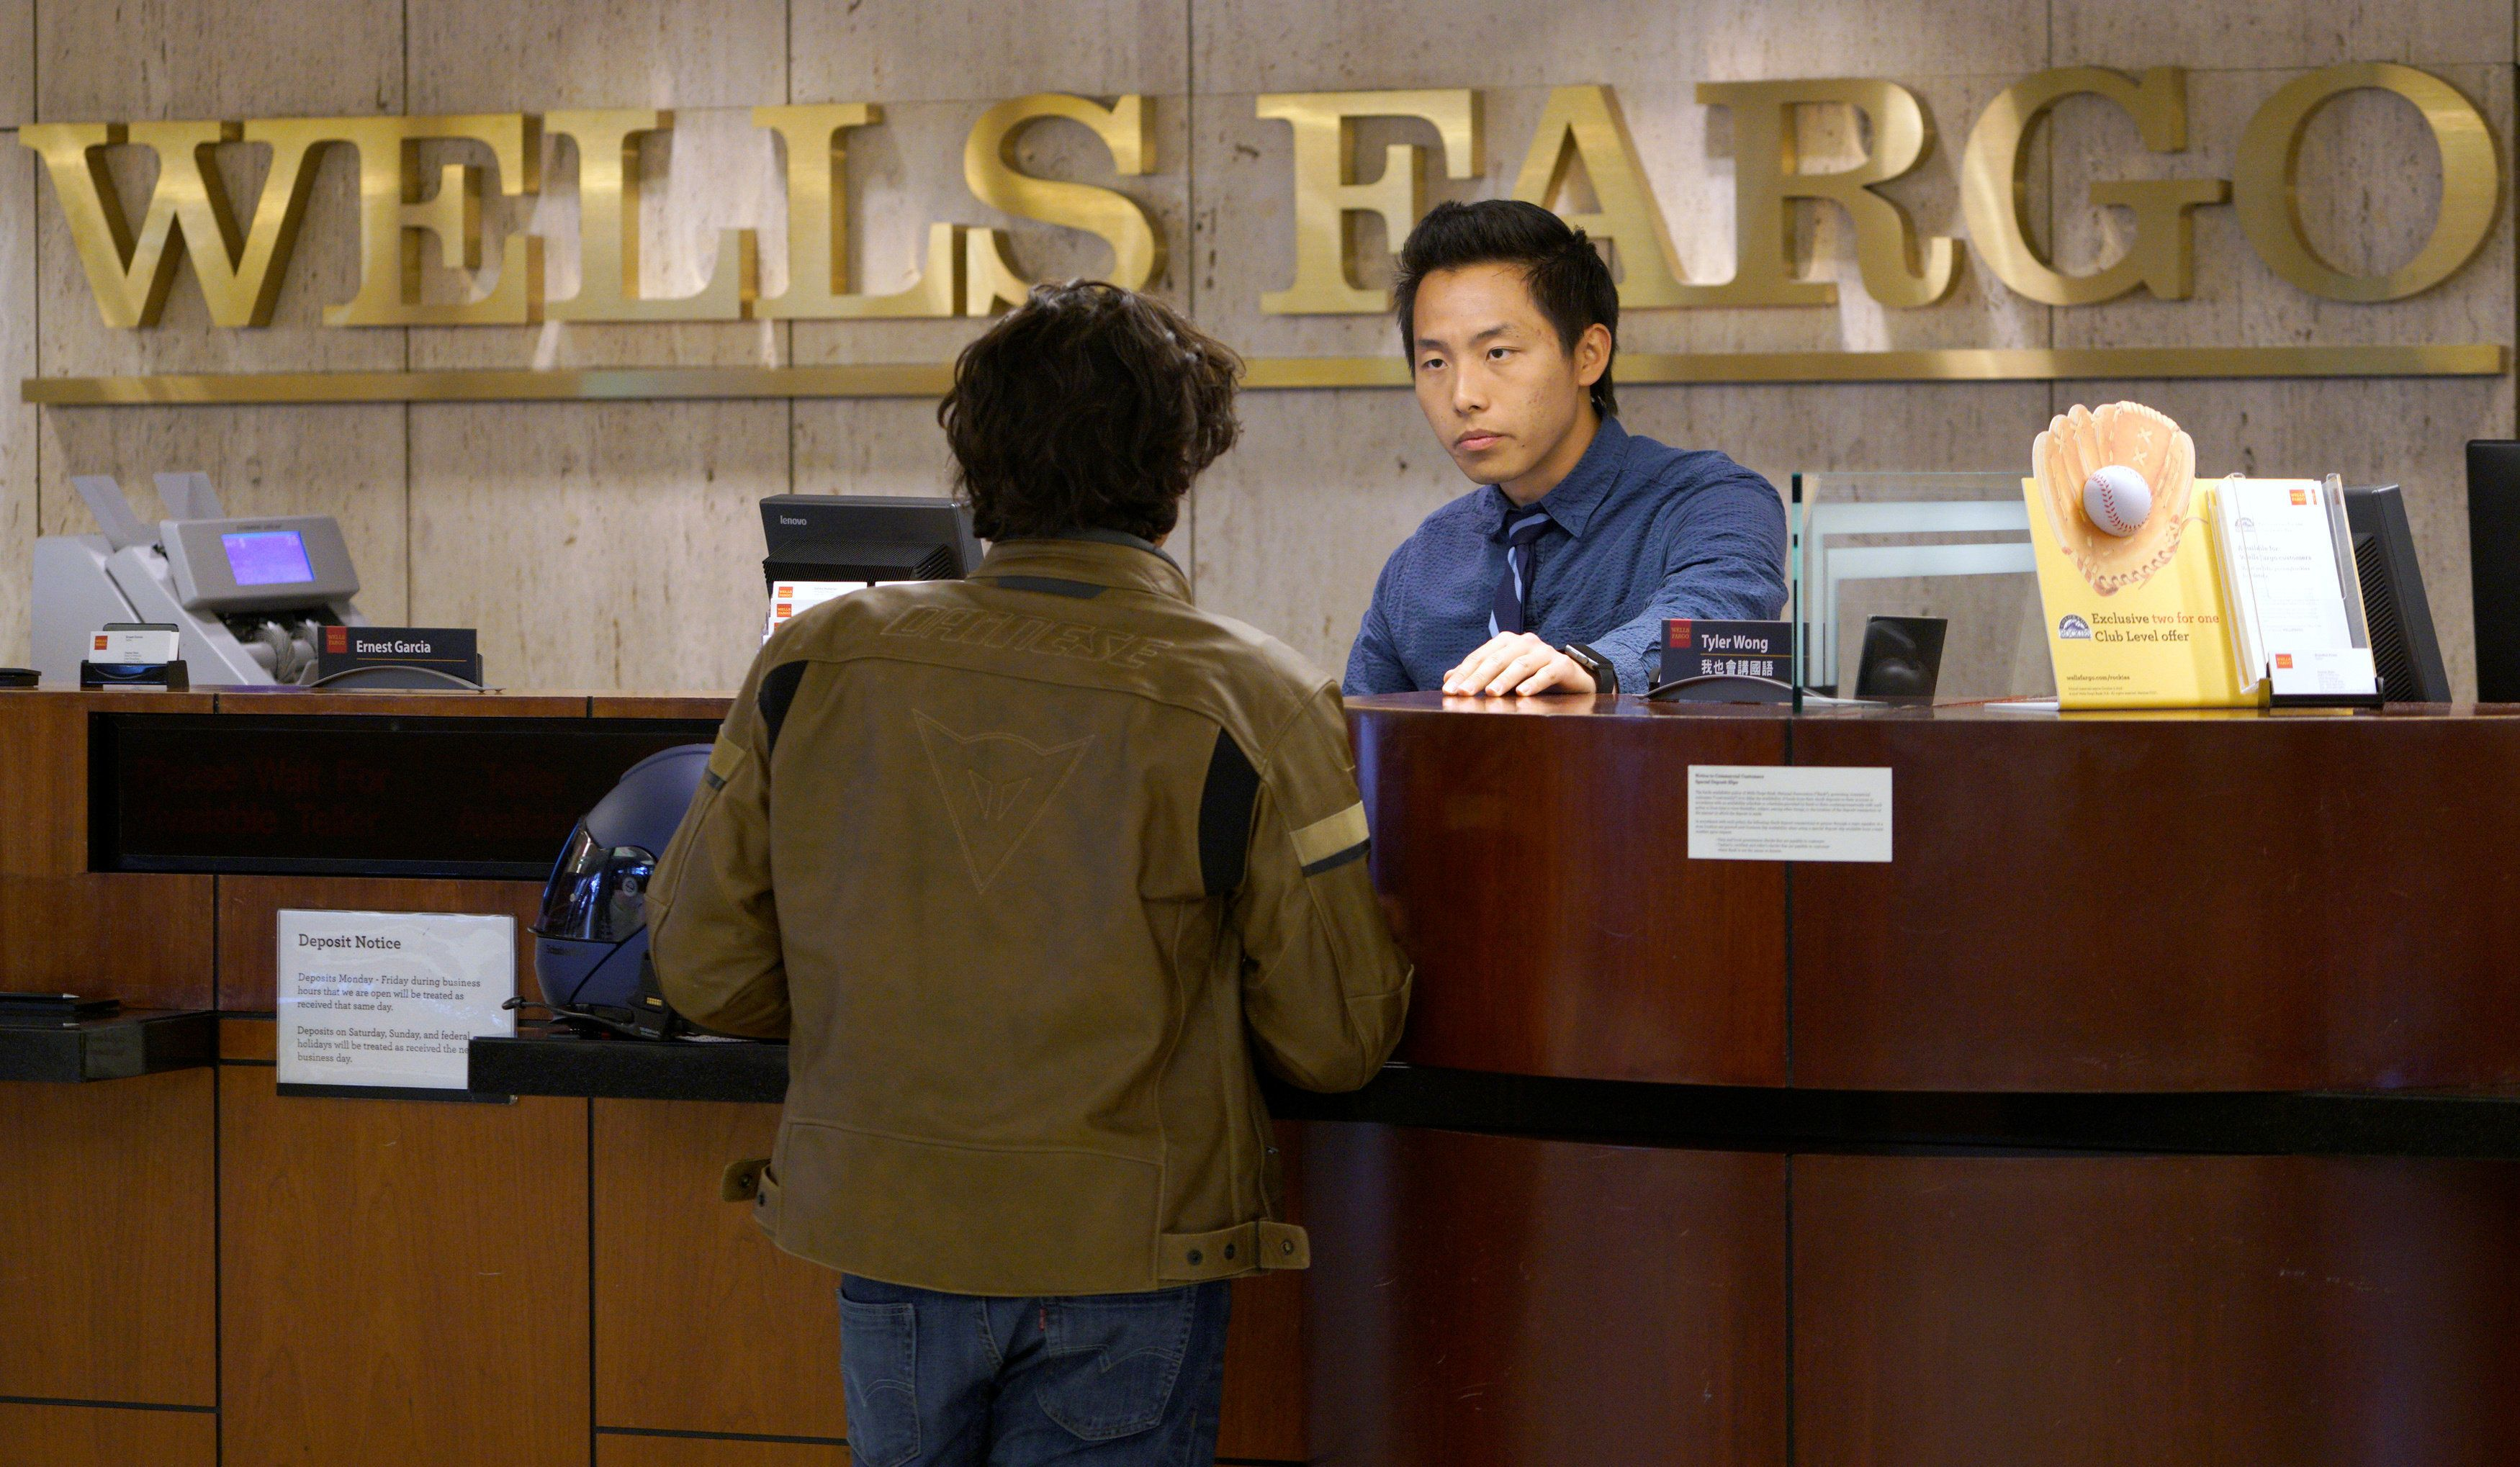 Bank Teller Tyler Wong talks to a customer at the Wells Fargo bank in Denver, Colorado, U.S. April 13, 2016.